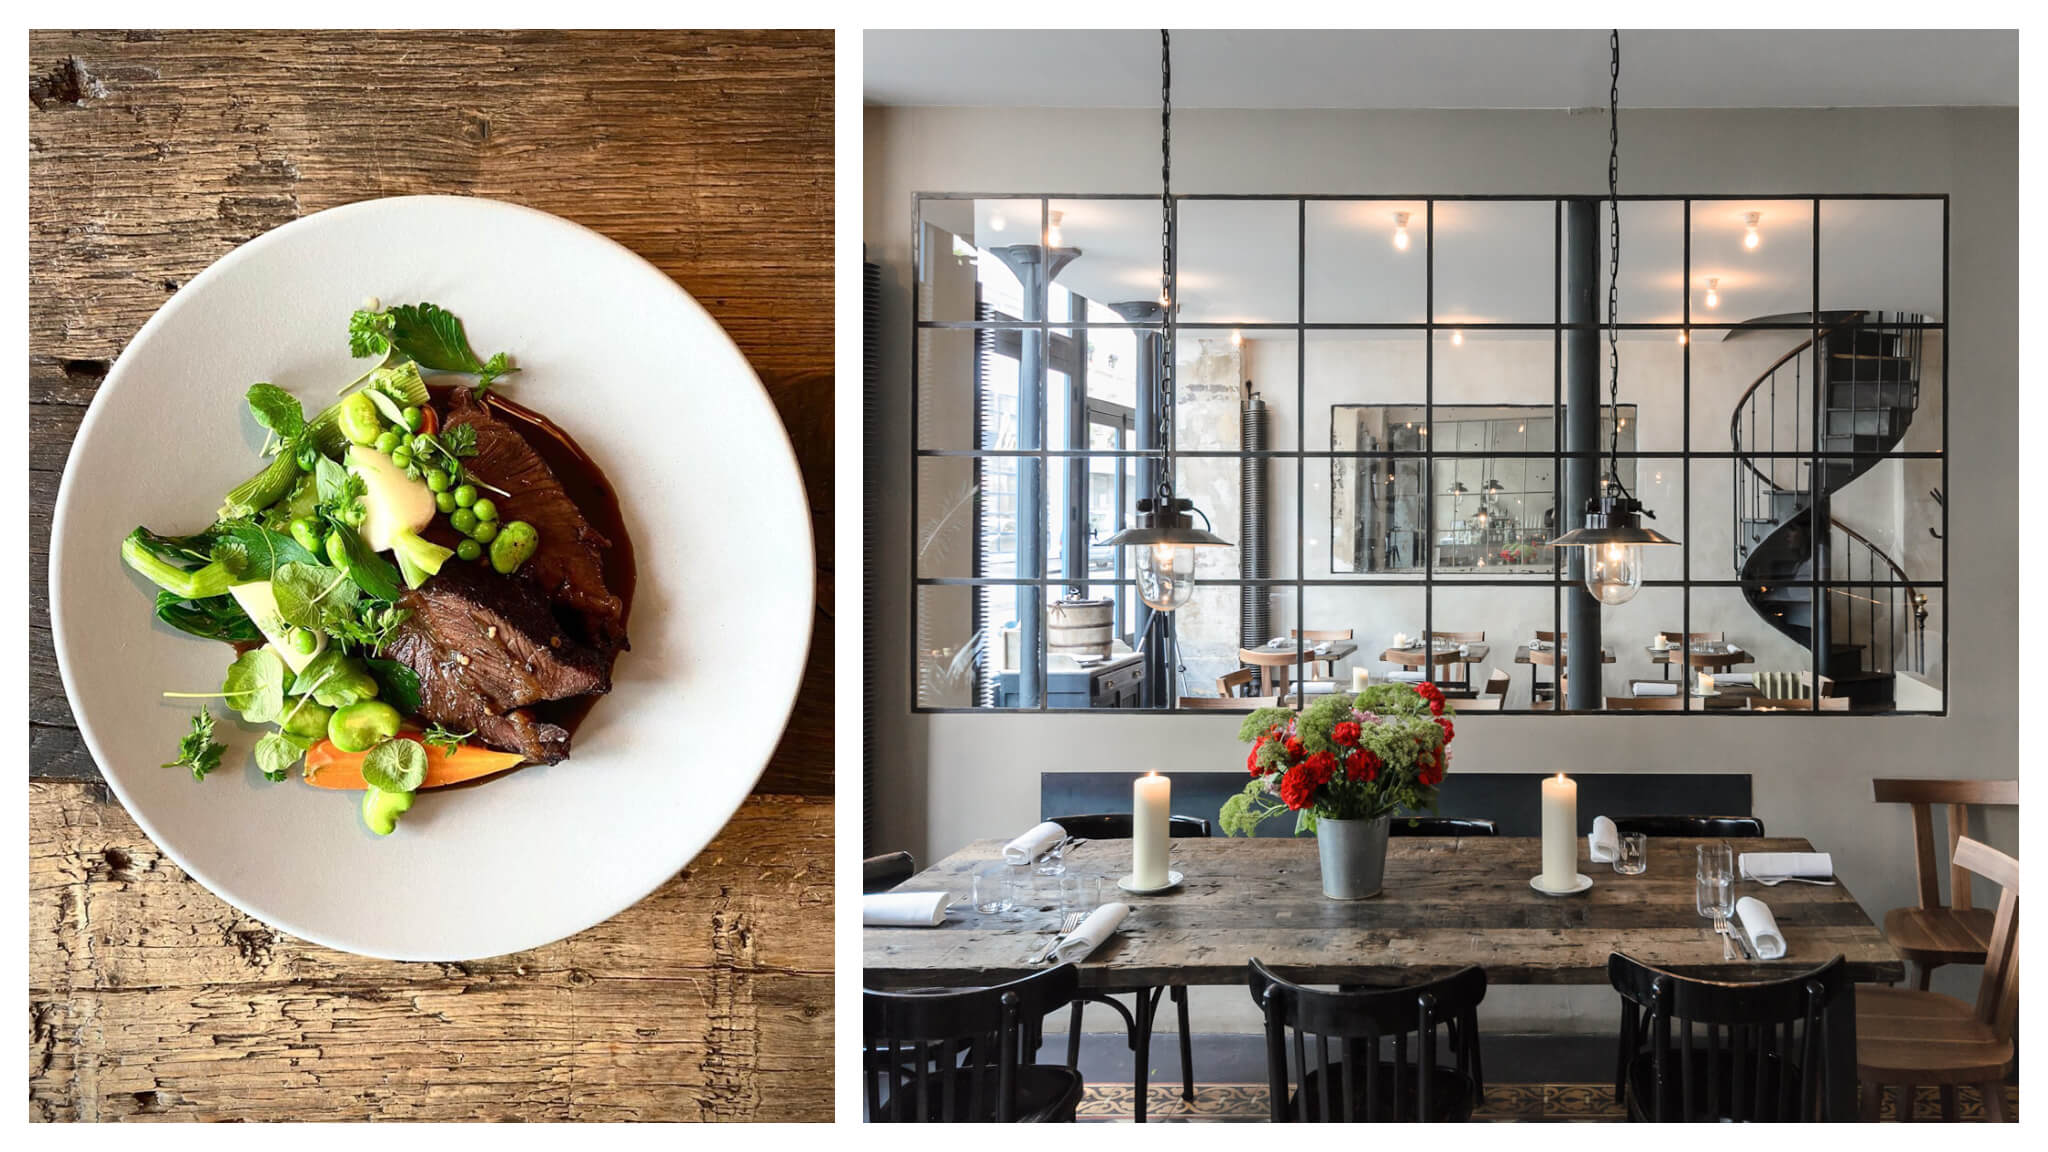 Left: a vegetable and meat dish in a white plate on a timber table. Right: a marble table with a mirror hanging on the back wall at restaurant Septime in Paris.